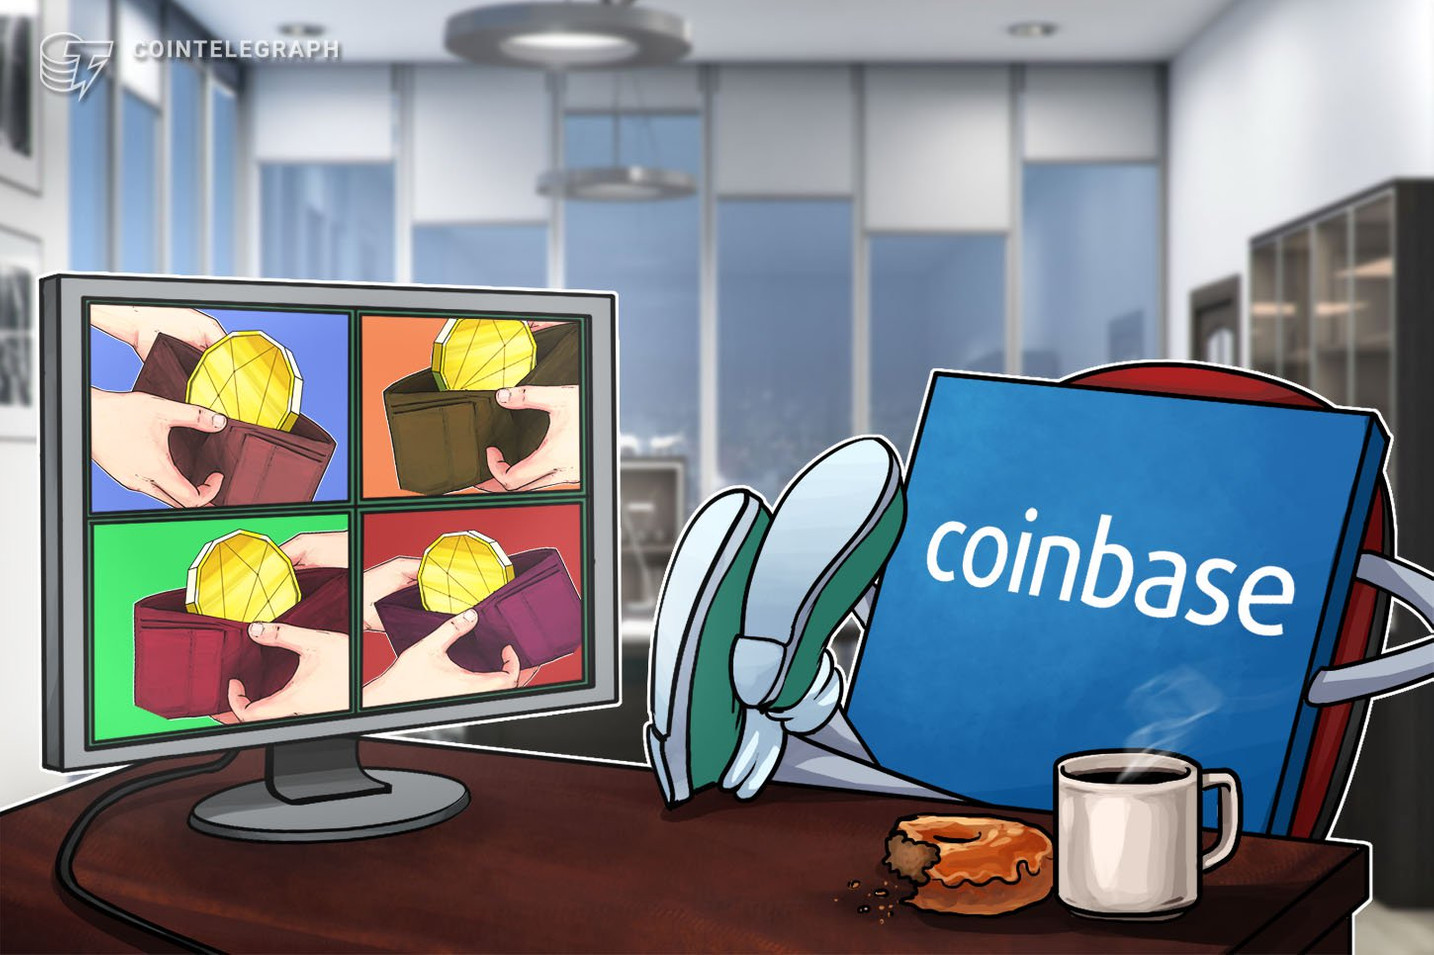 Coinbase: Basic Attention Token ufficialmente disponibile sulla piattaforma